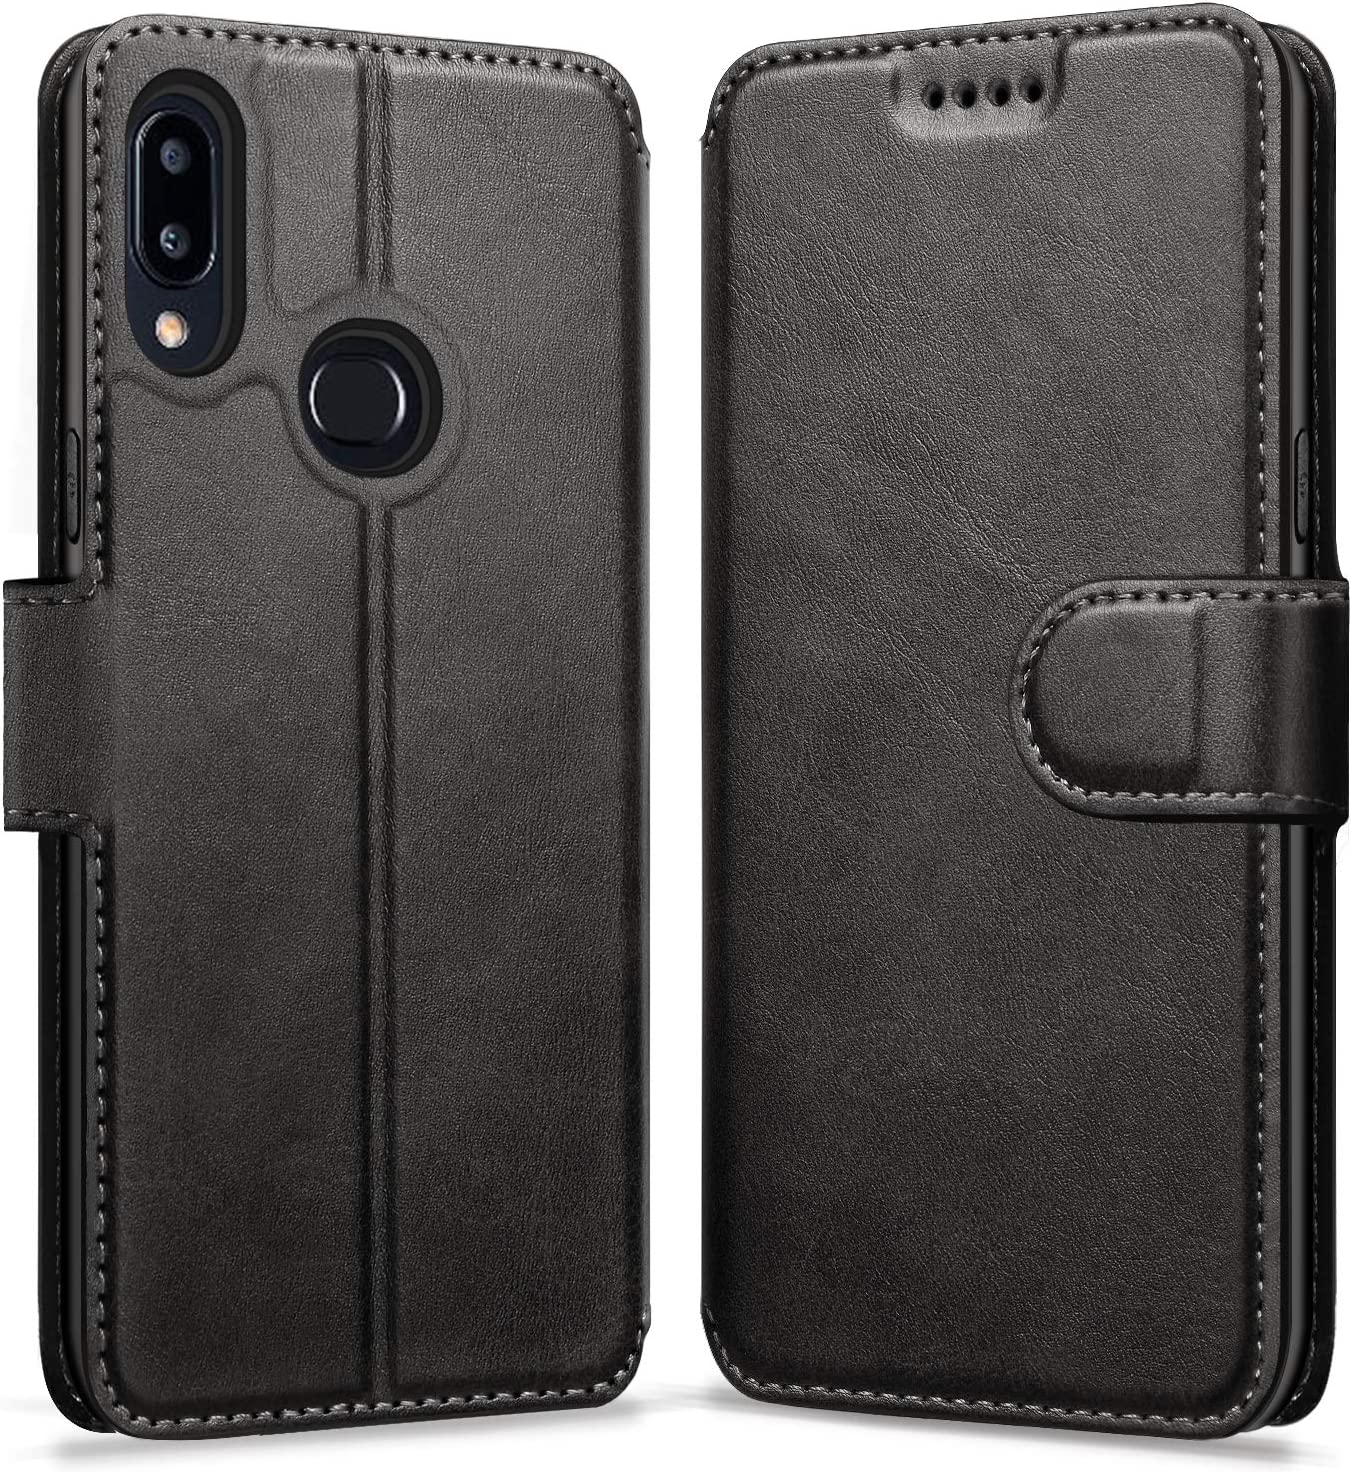 ykooe Flip Case for Samsung Galaxy A10s, PU Leather Case with Card Slots Protective Cover for Samsung Galaxy A10s, Black